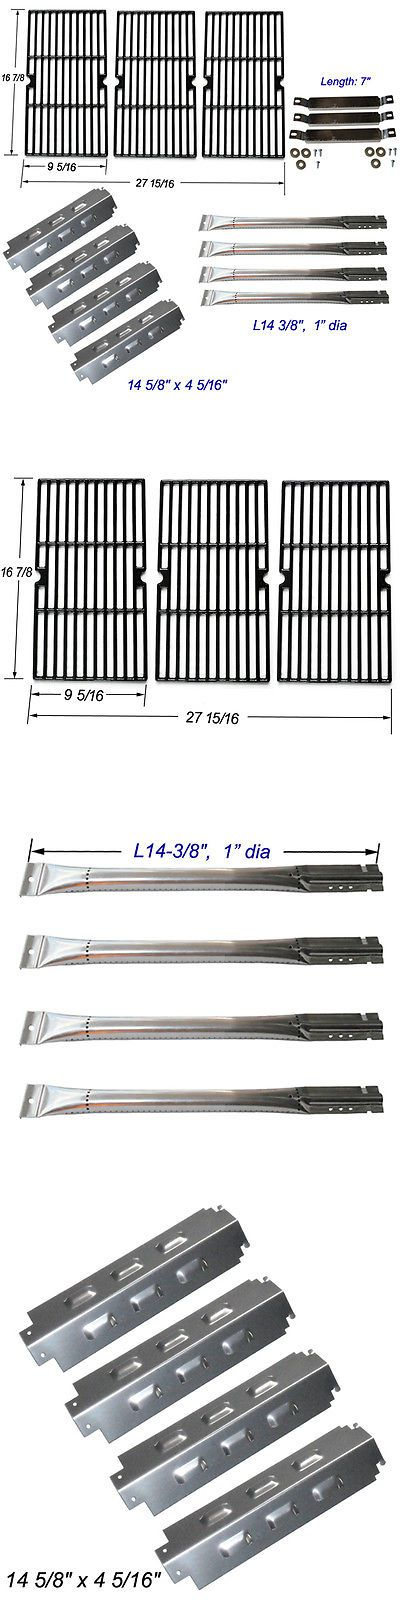 BBQ Tools and Accessories 20725: Charbroil 463420507,463420509 Burner,Carryover Tubes,Heat Plates,Grill Grates -> BUY IT NOW ONLY: $62.99 on eBay!